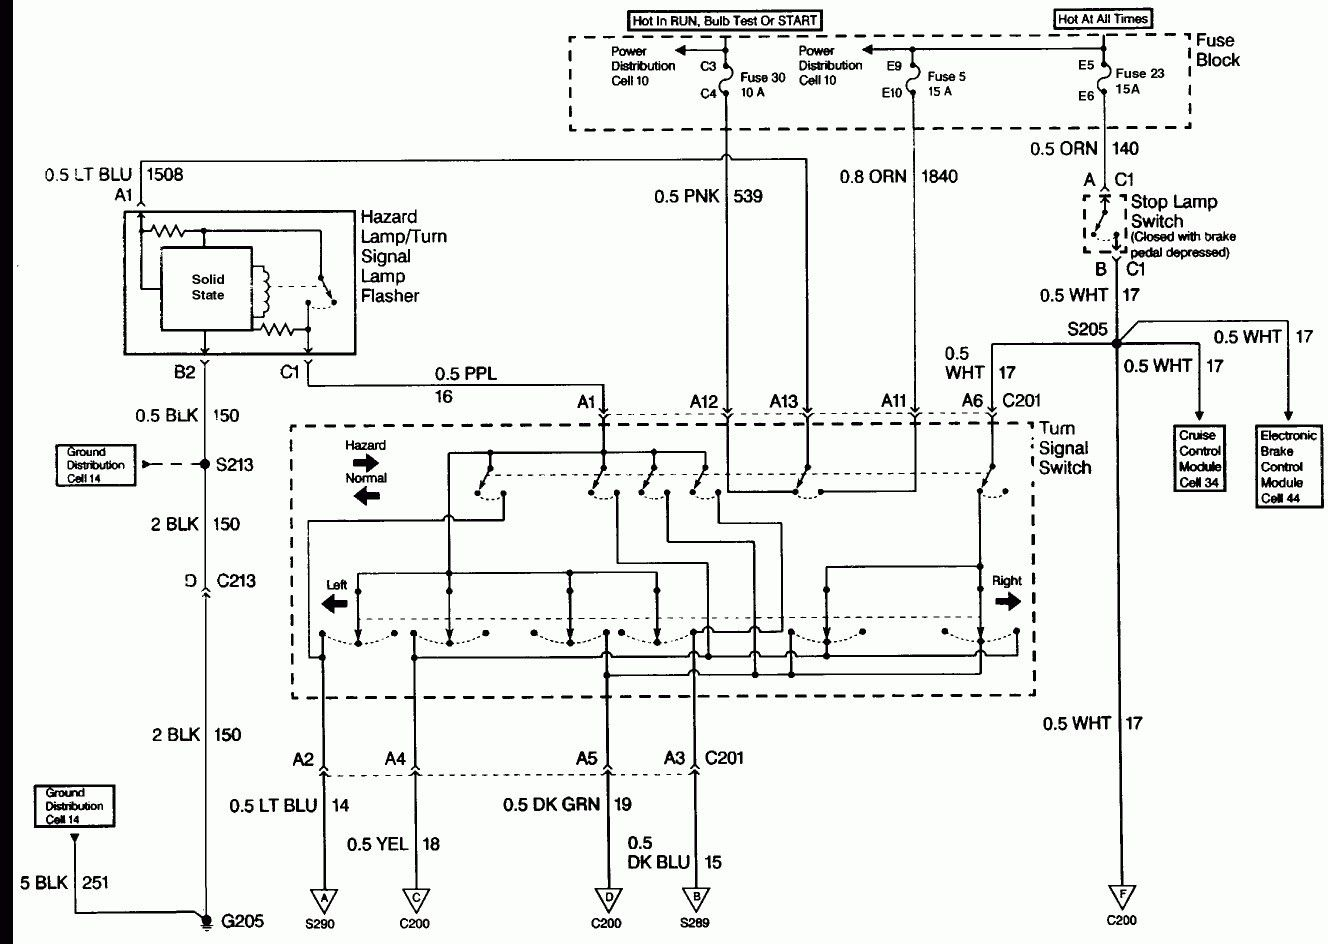 Google Search Wiring Diagram For Brake Light Switch On A 2000 Chevy Pick Up Inspirational In 2020 Light Switch Wiring Light Switch Chevy